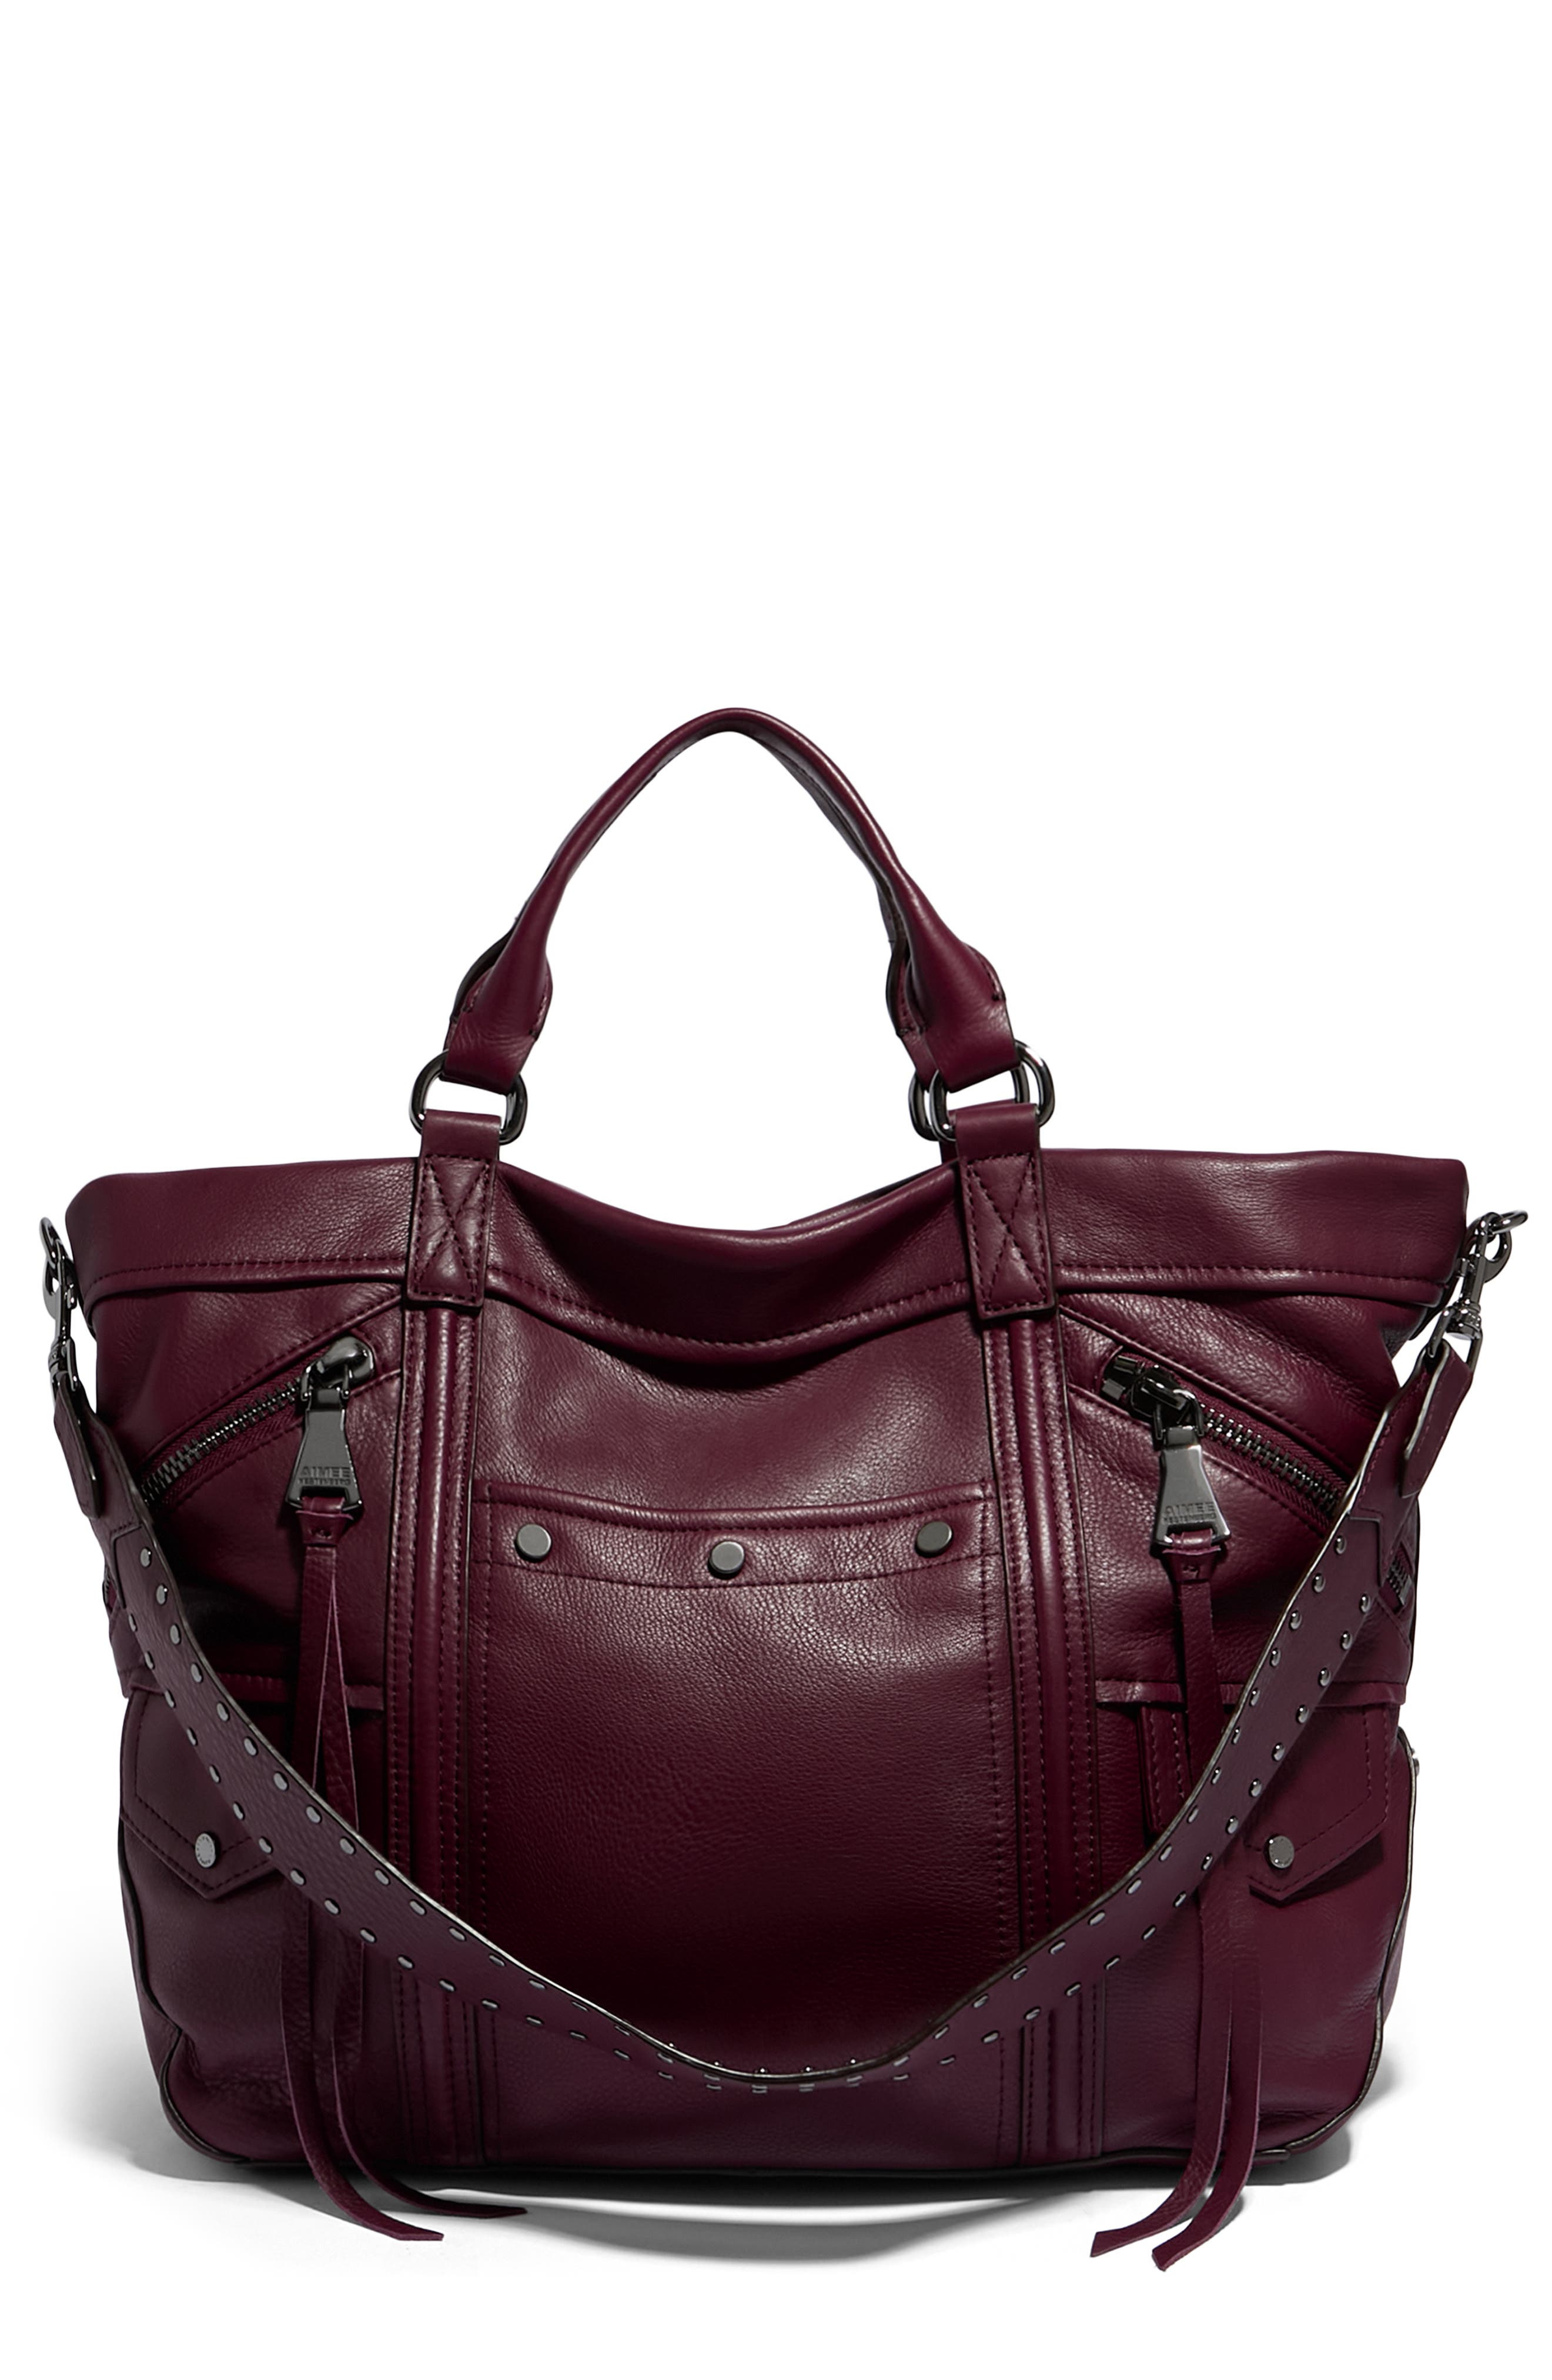 Fair Game Convertible Leather Tote Bag